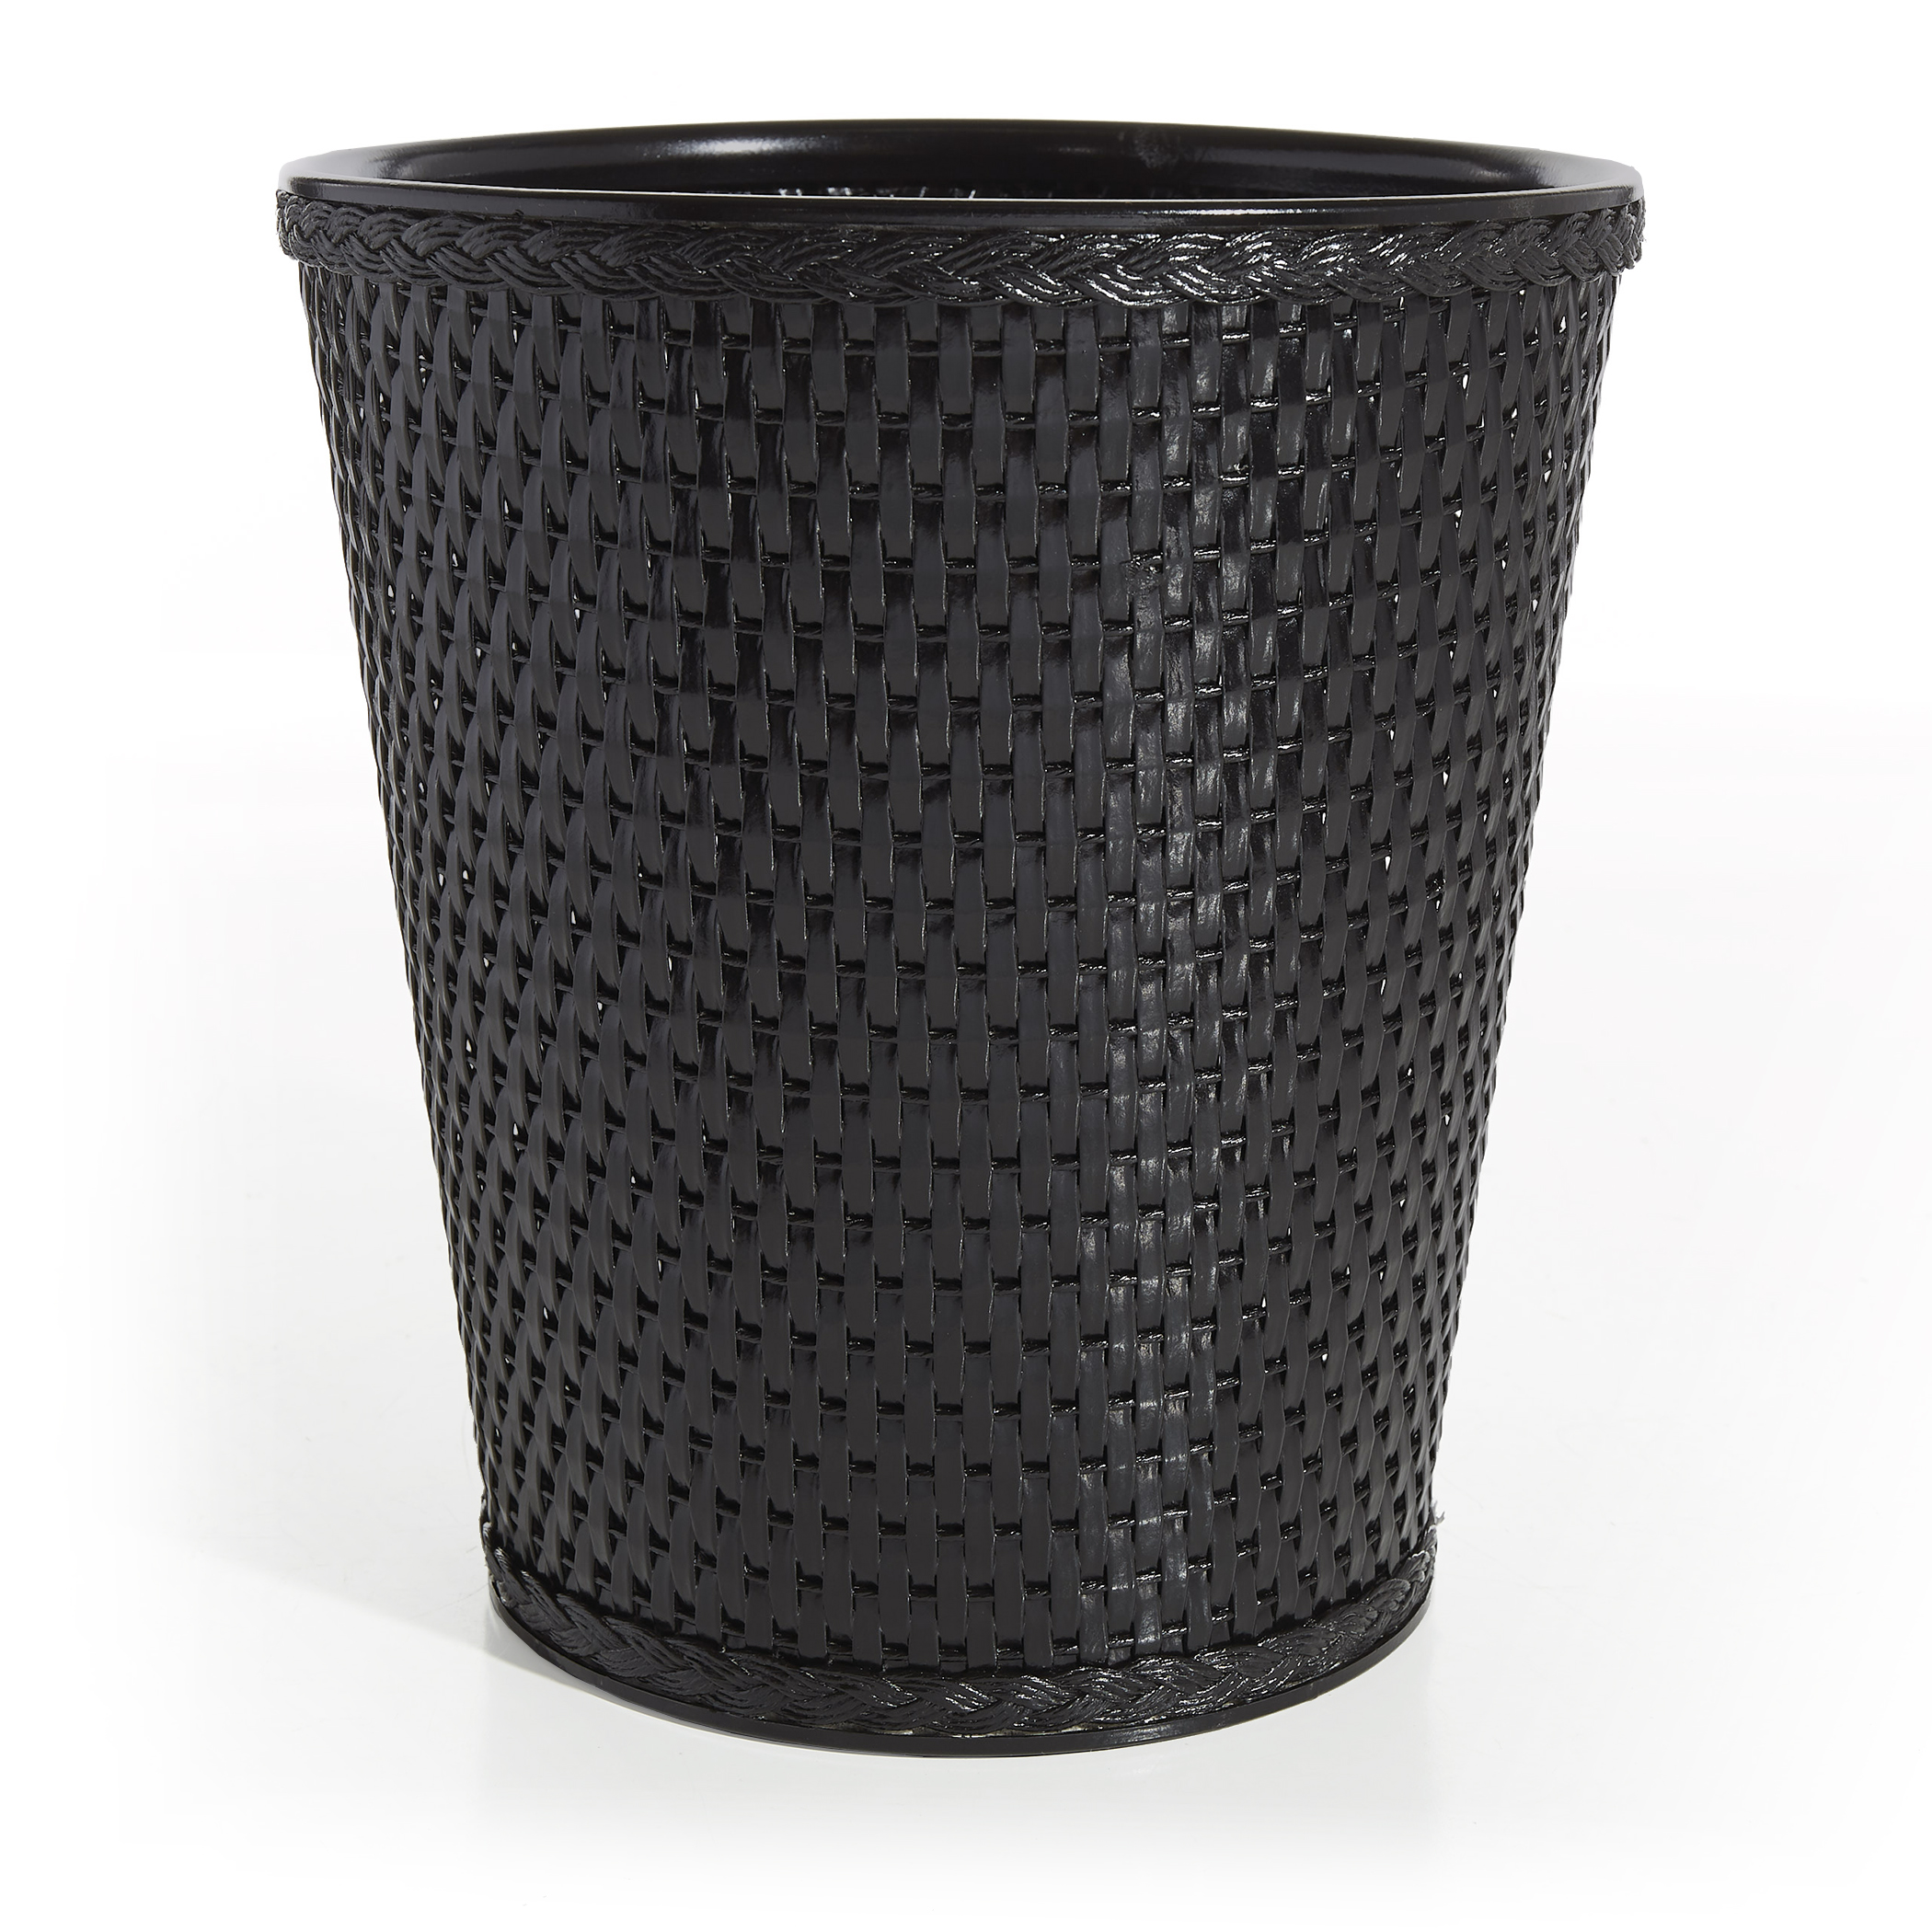 LaMont Home Carter Collection - Round Wastebasket